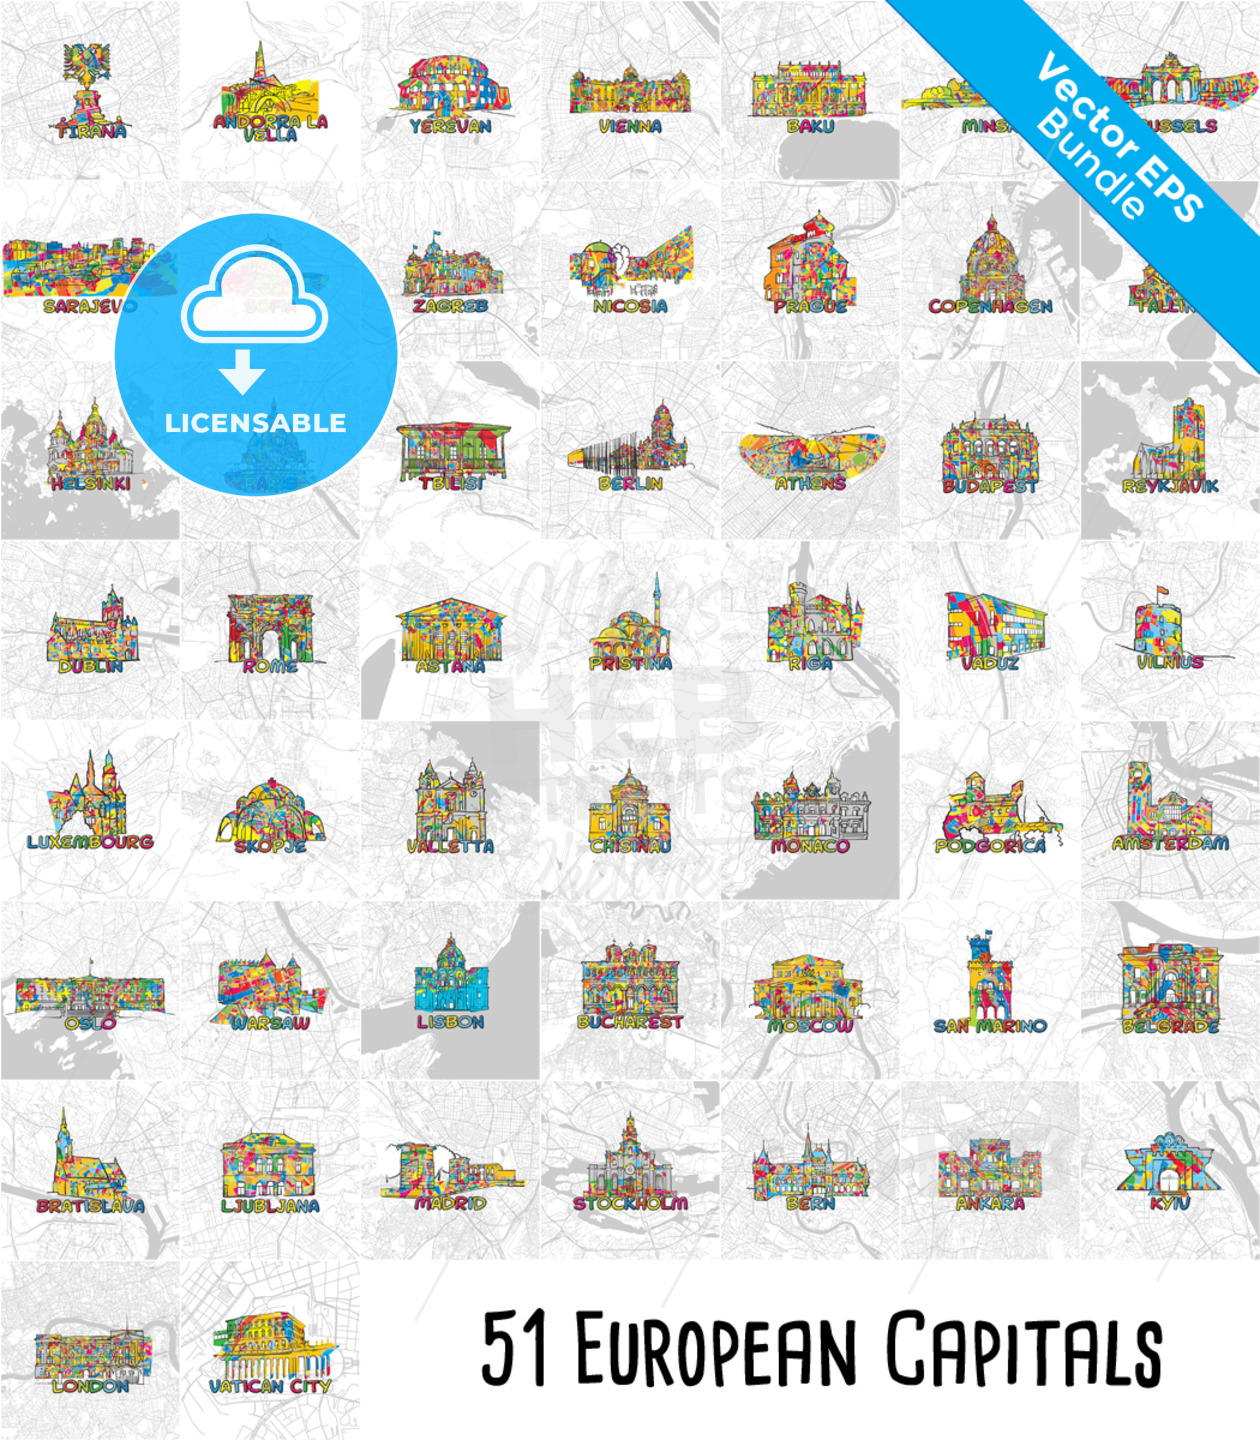 51 European Capital Cities, Famous Architecture and Maps. - HEBSTREITS Sketches